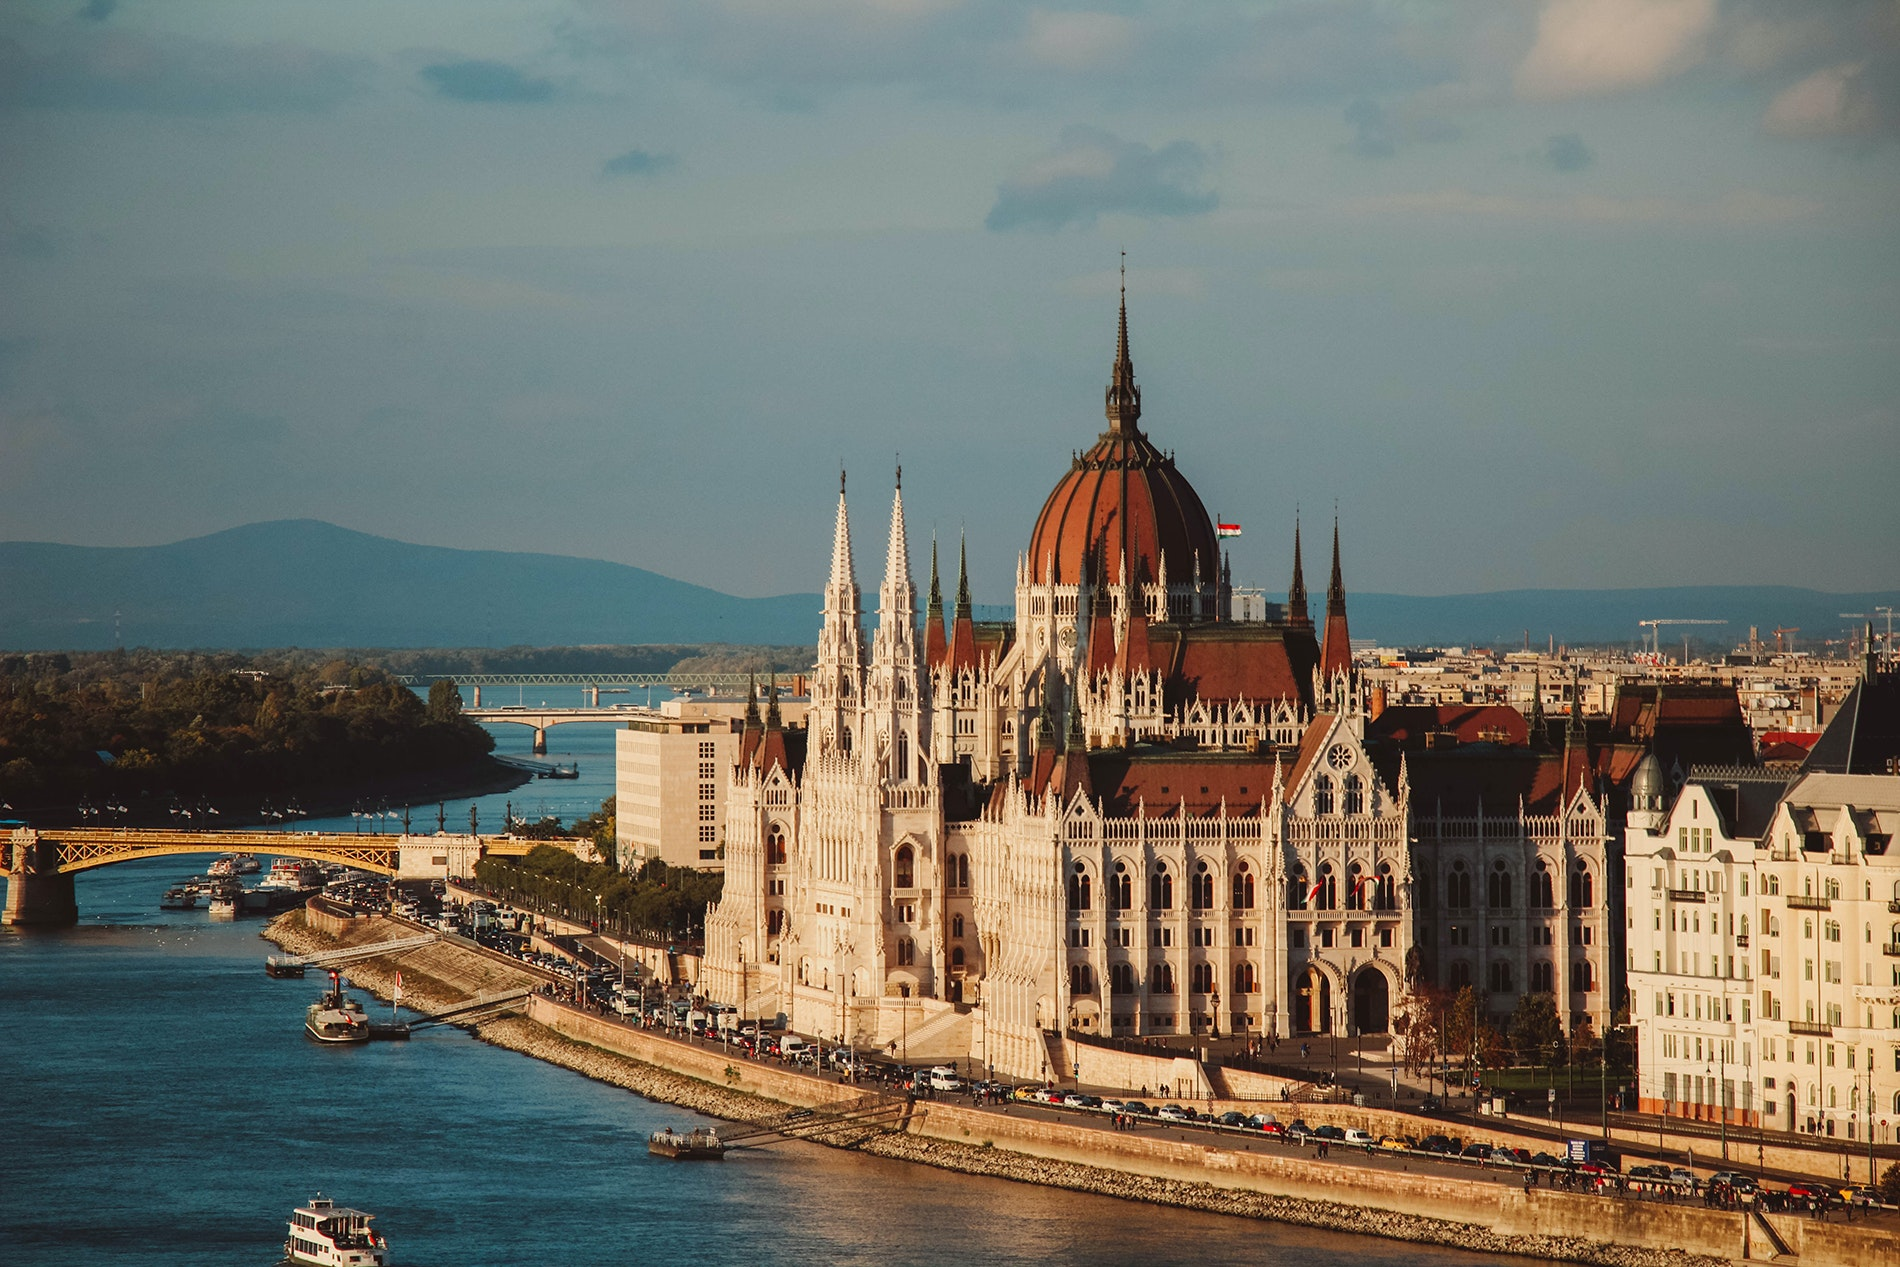 The River Danube bisects Hungary, a chain bridge connecting the hilly, western half of the city called Buda with the flat, eastern part called Pest.